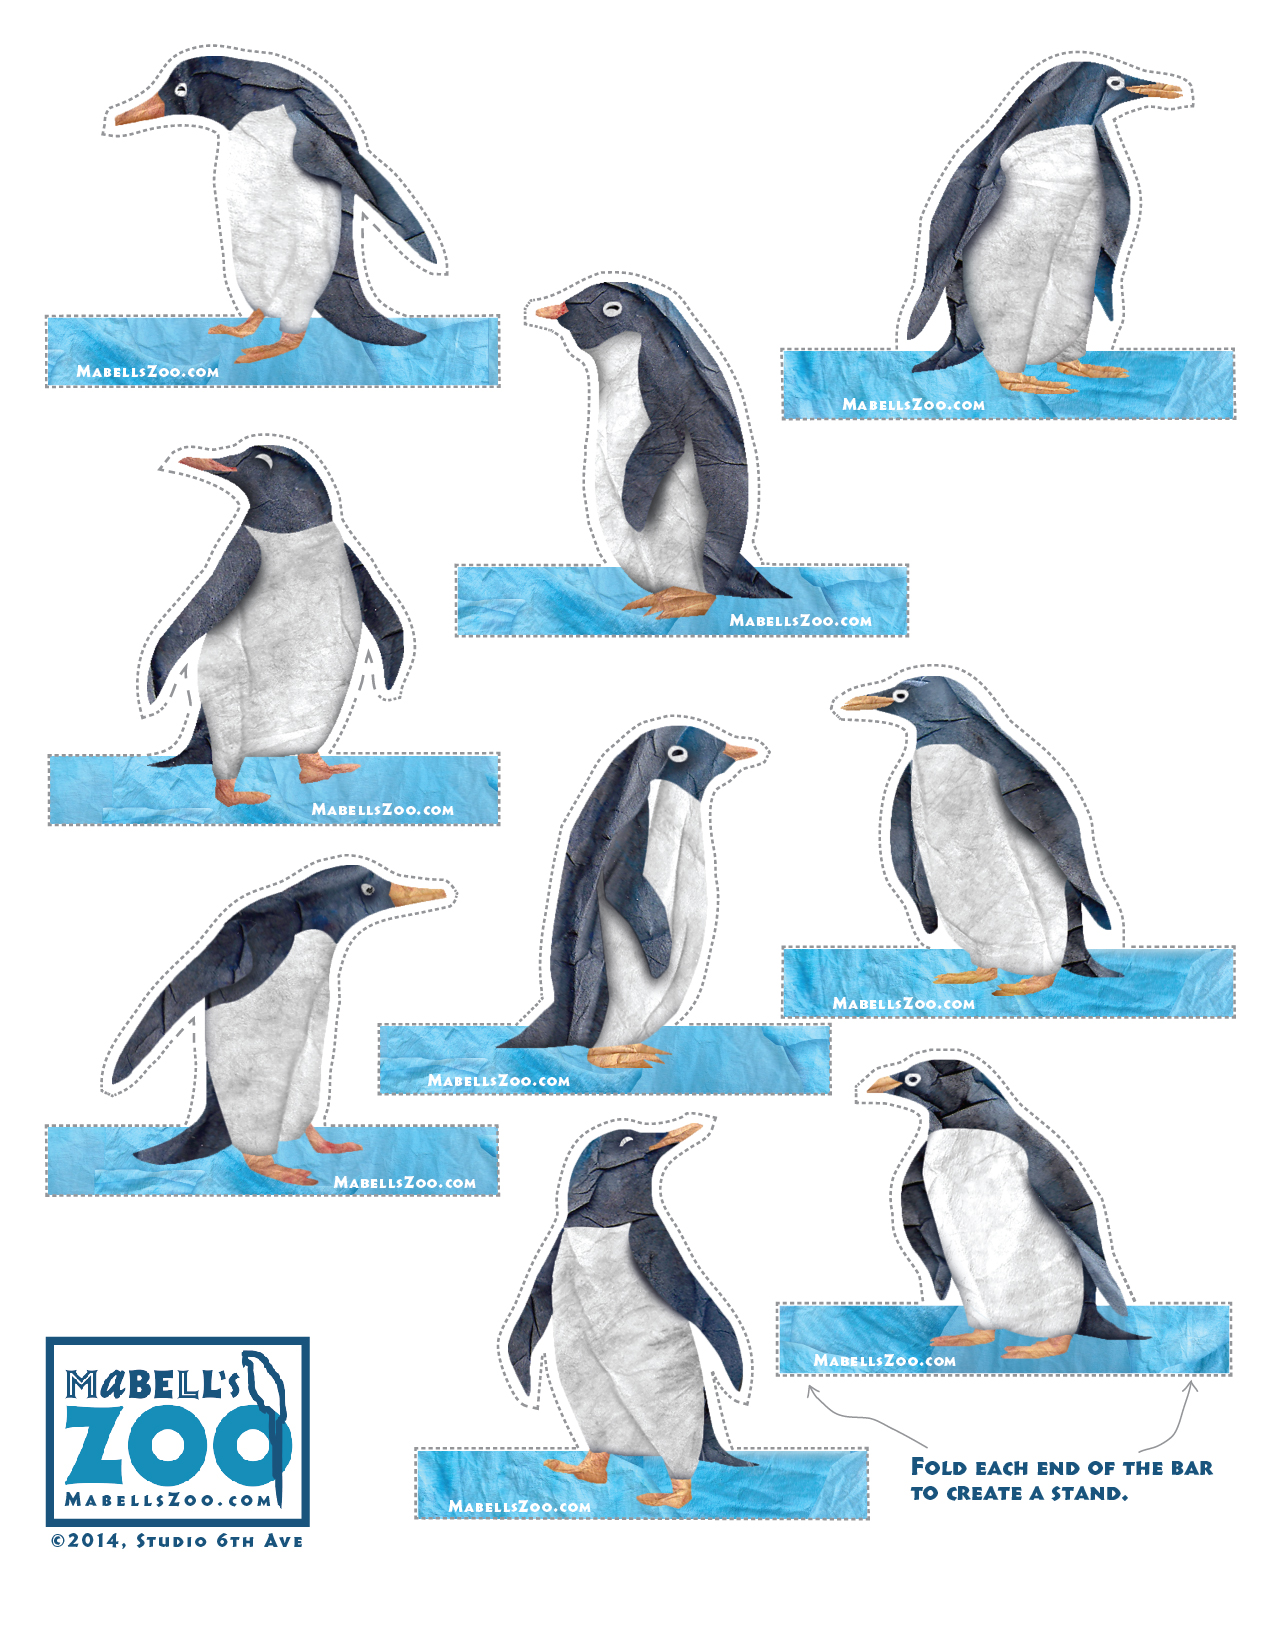 Mabell's Zoo Cutouts: Nine Penguins